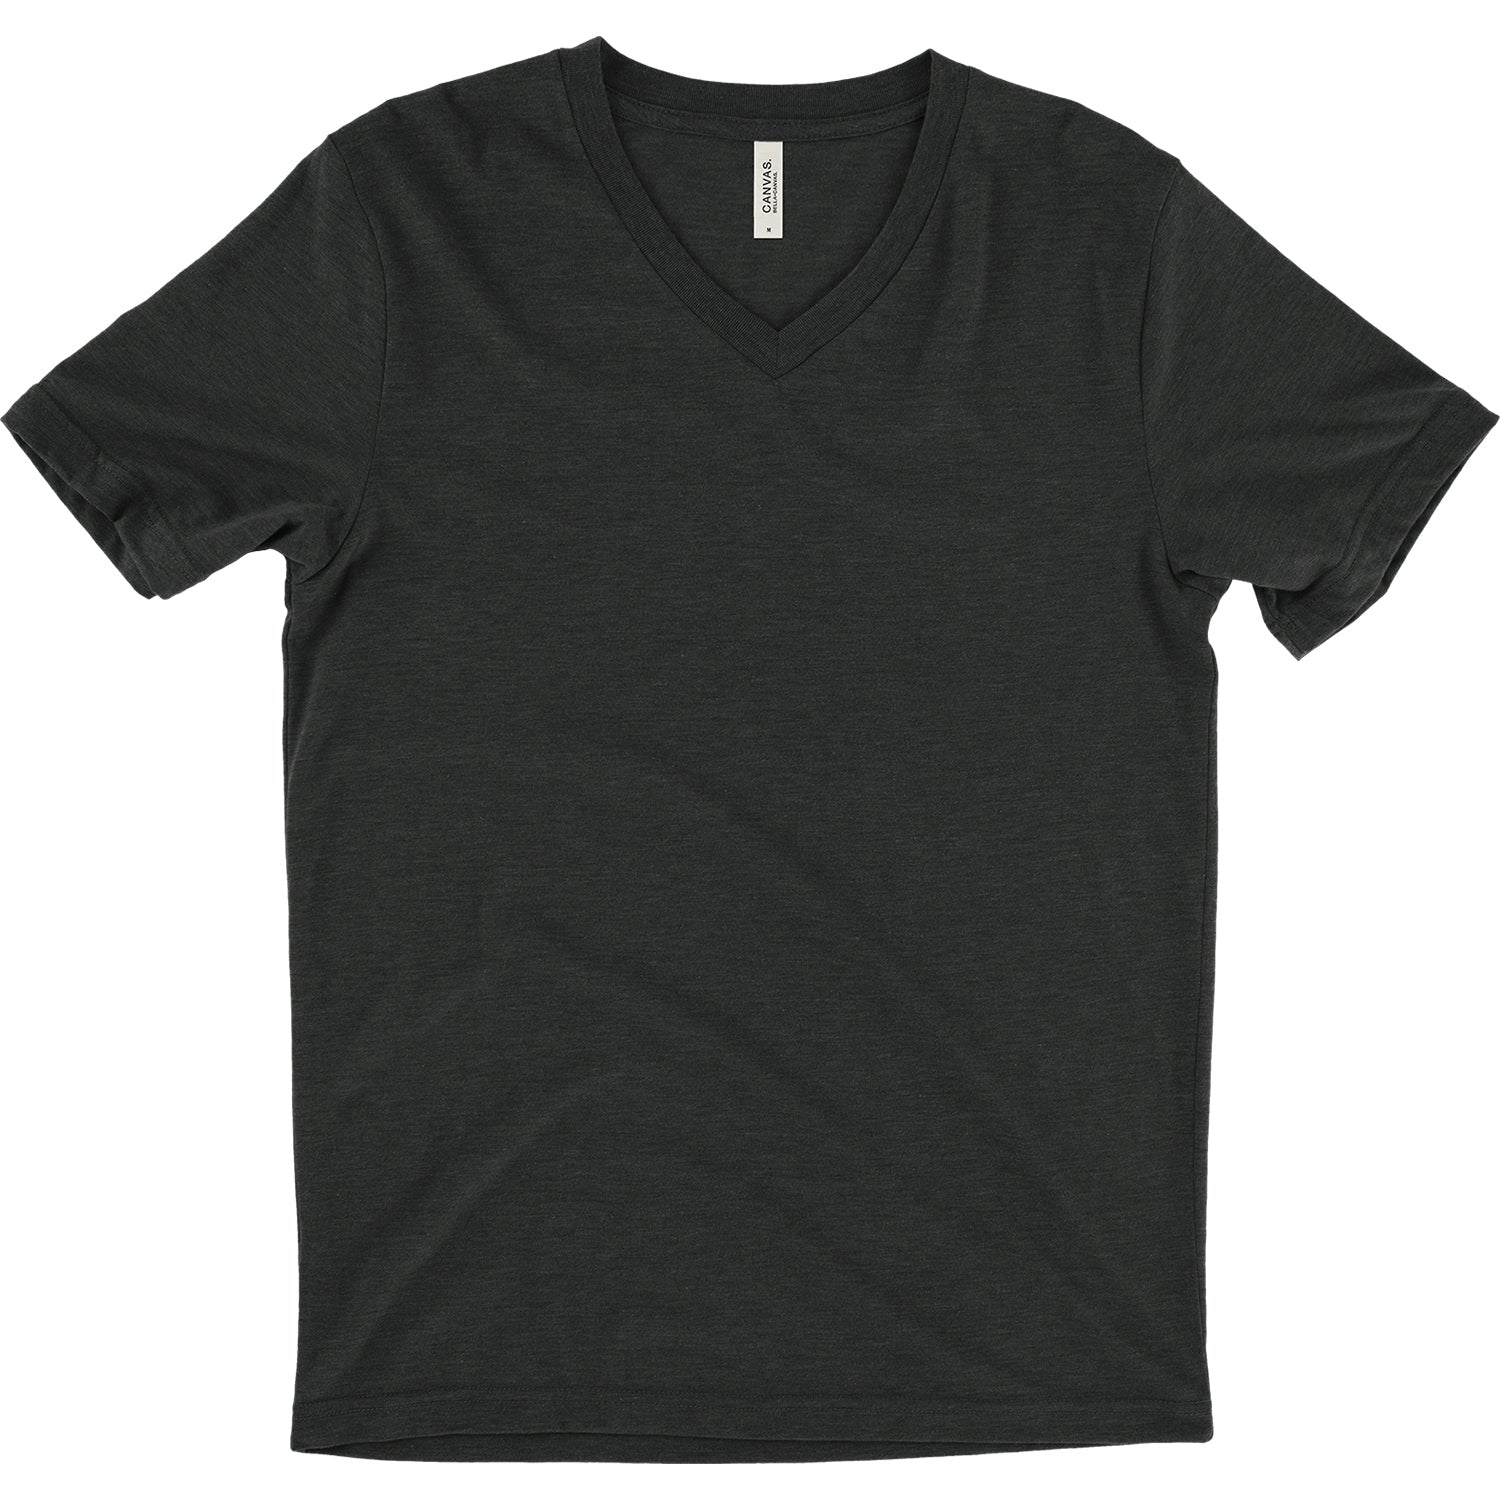 Unisex Triblend Short Sleeve V-Neck Tee - Tri Black